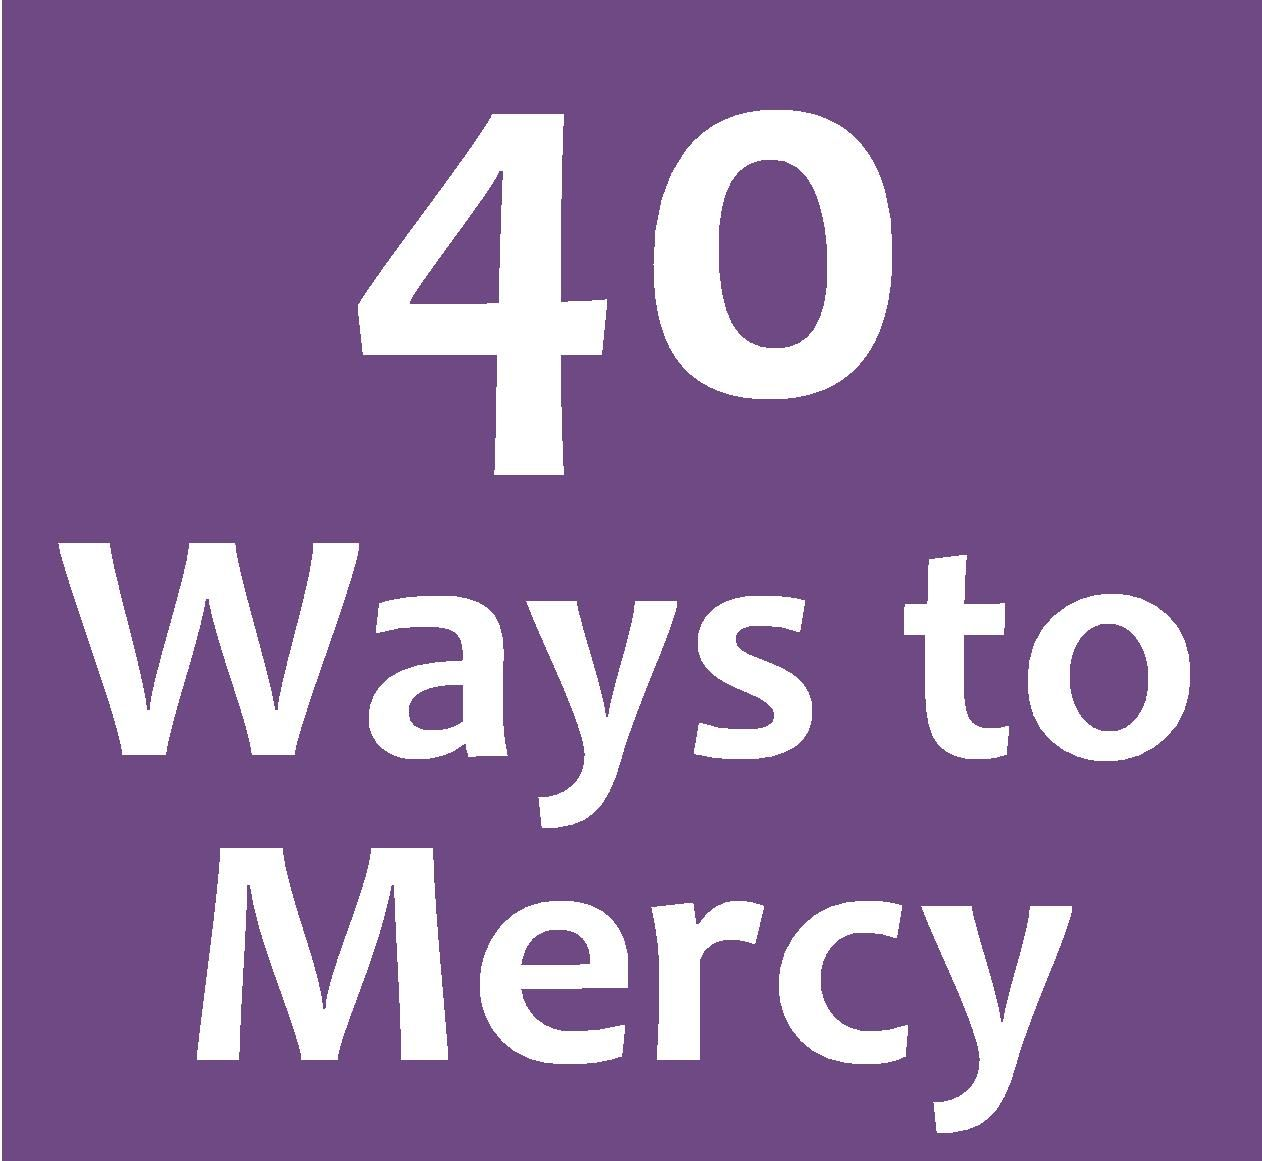 40 Ways to Mercy - A Lenten Journey for the Extraordinary Jubilee Year of Mercy   Catholic Lent calendar